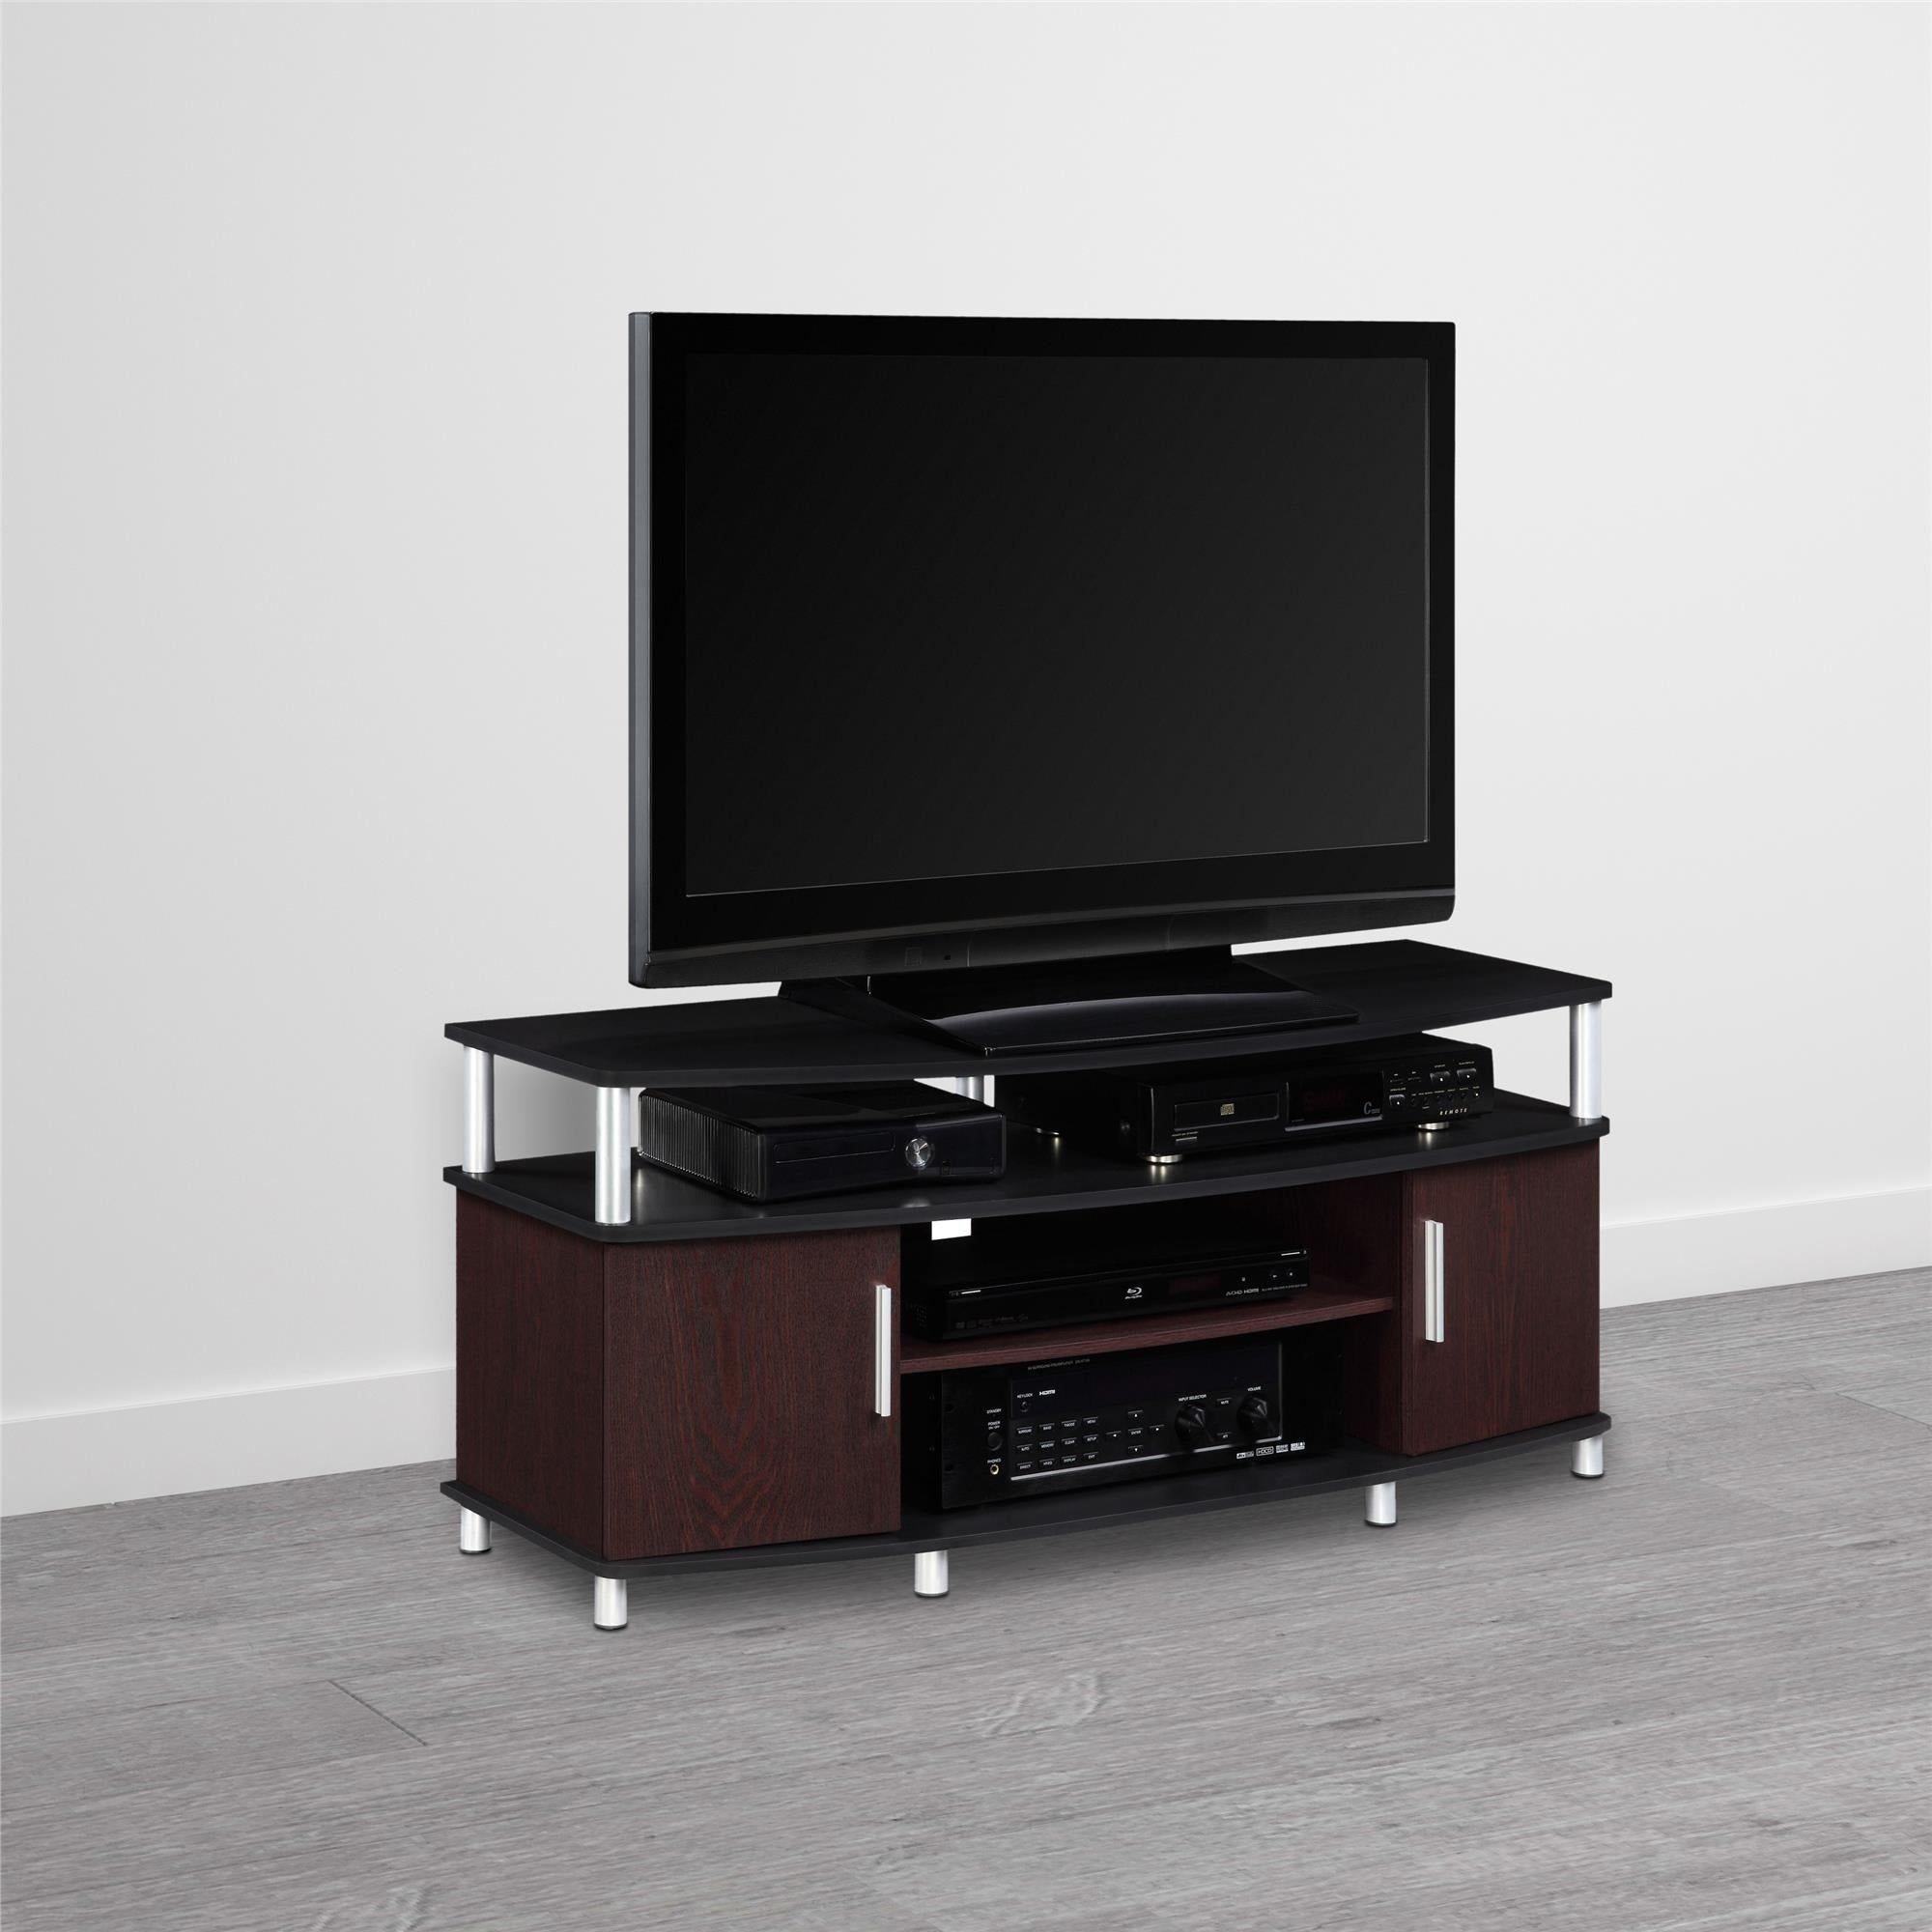 Shop Avenue Greene Ford Cherry Black Wood 50 Inch Tv Stand Free